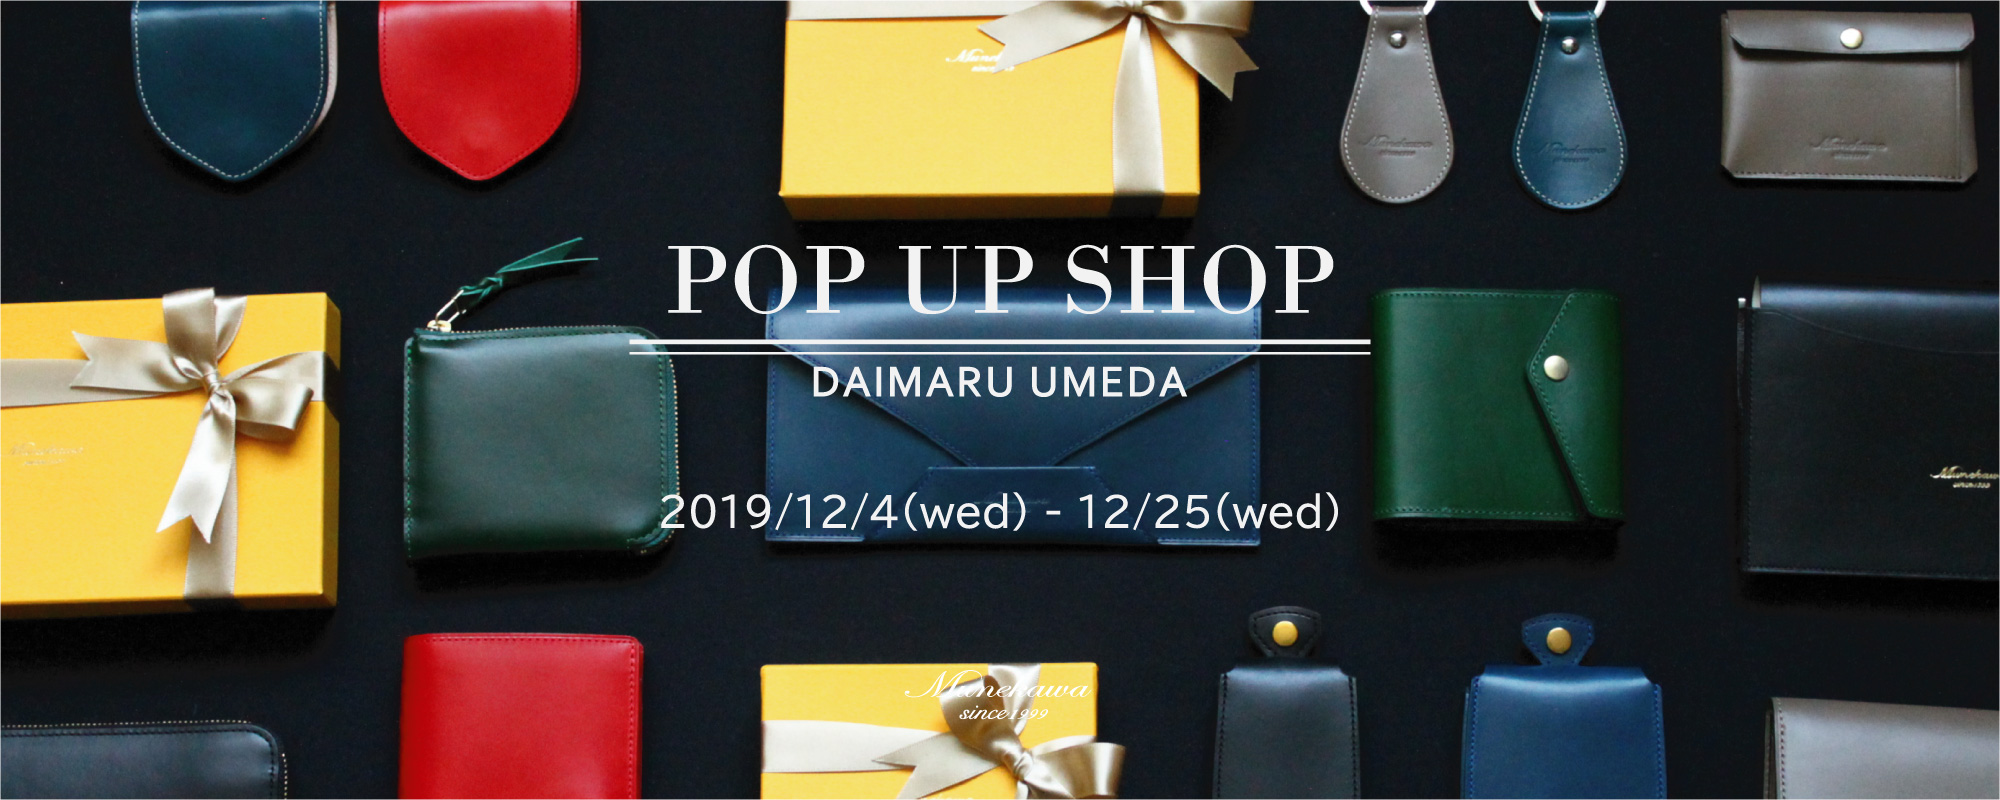 Munekawa pop up shop@JR名古屋高島屋